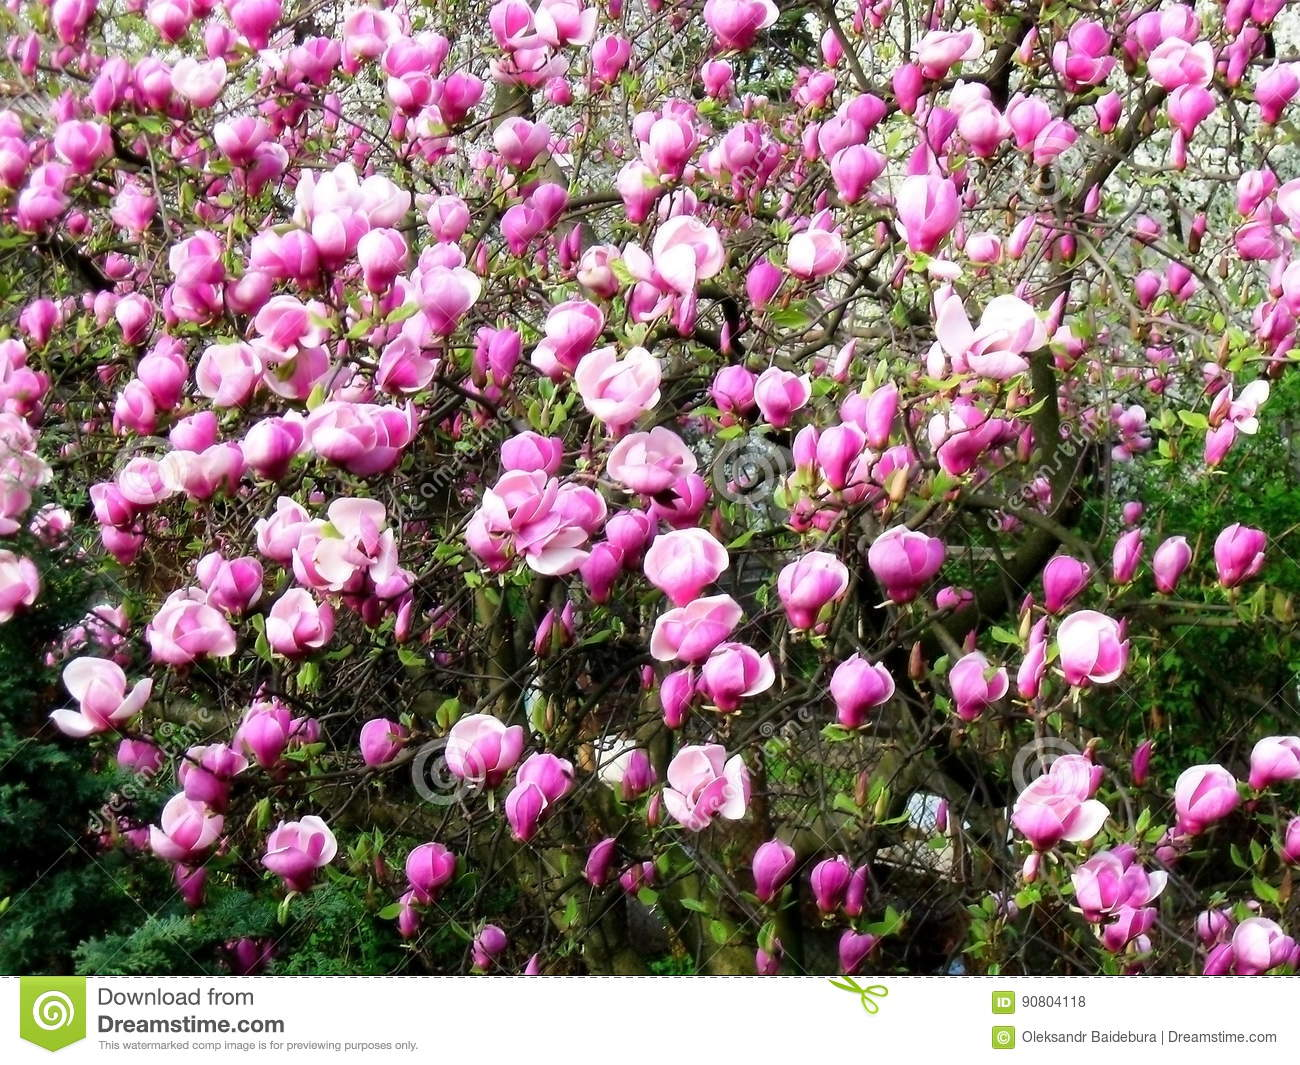 Bloomy magnolia tree with big pink flowers stock photo image of bloomy magnolia tree with big pink flowers mightylinksfo